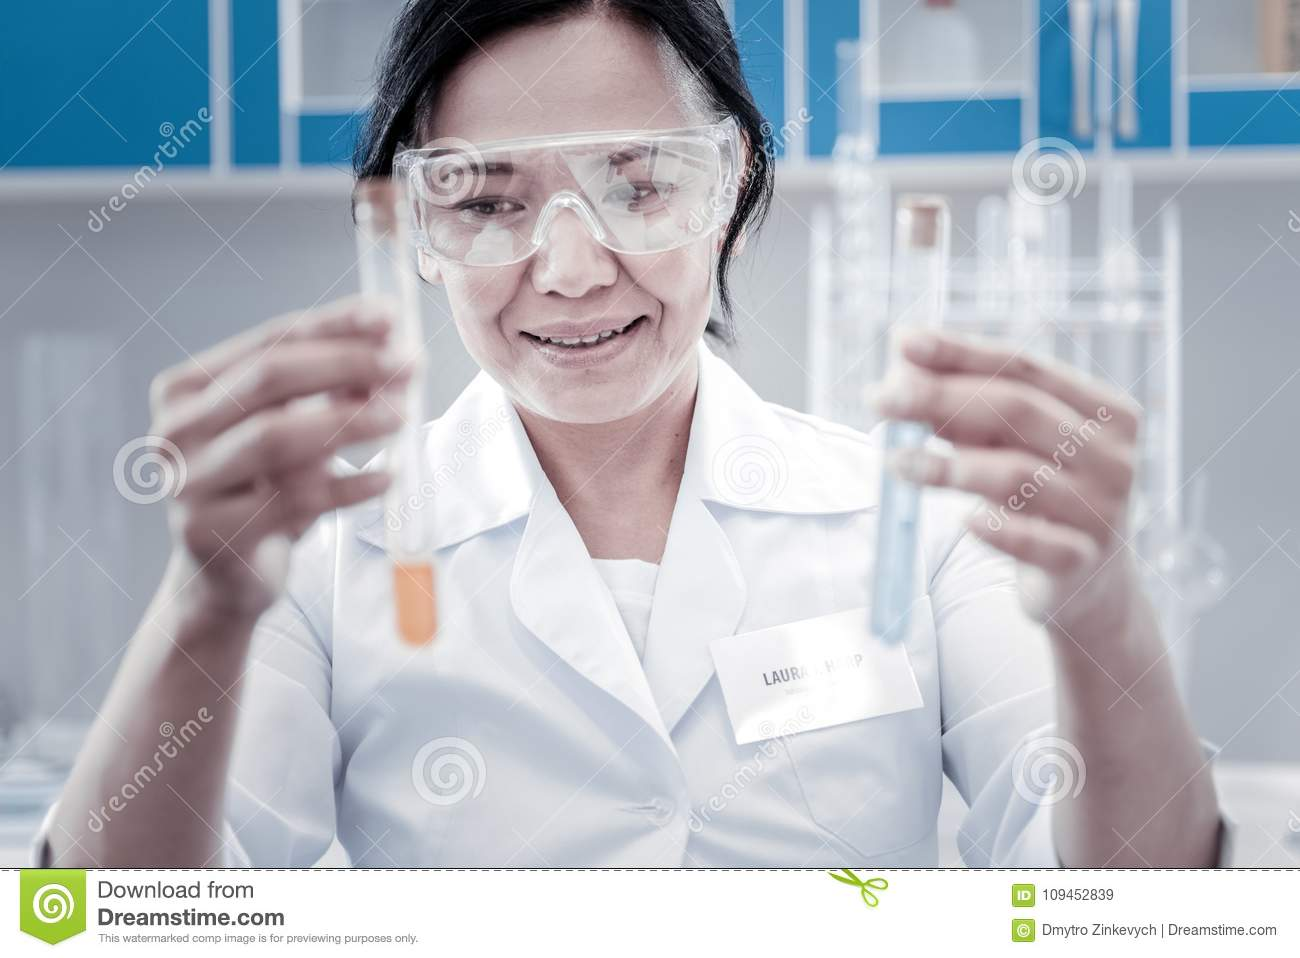 Have thought Hand job lab all